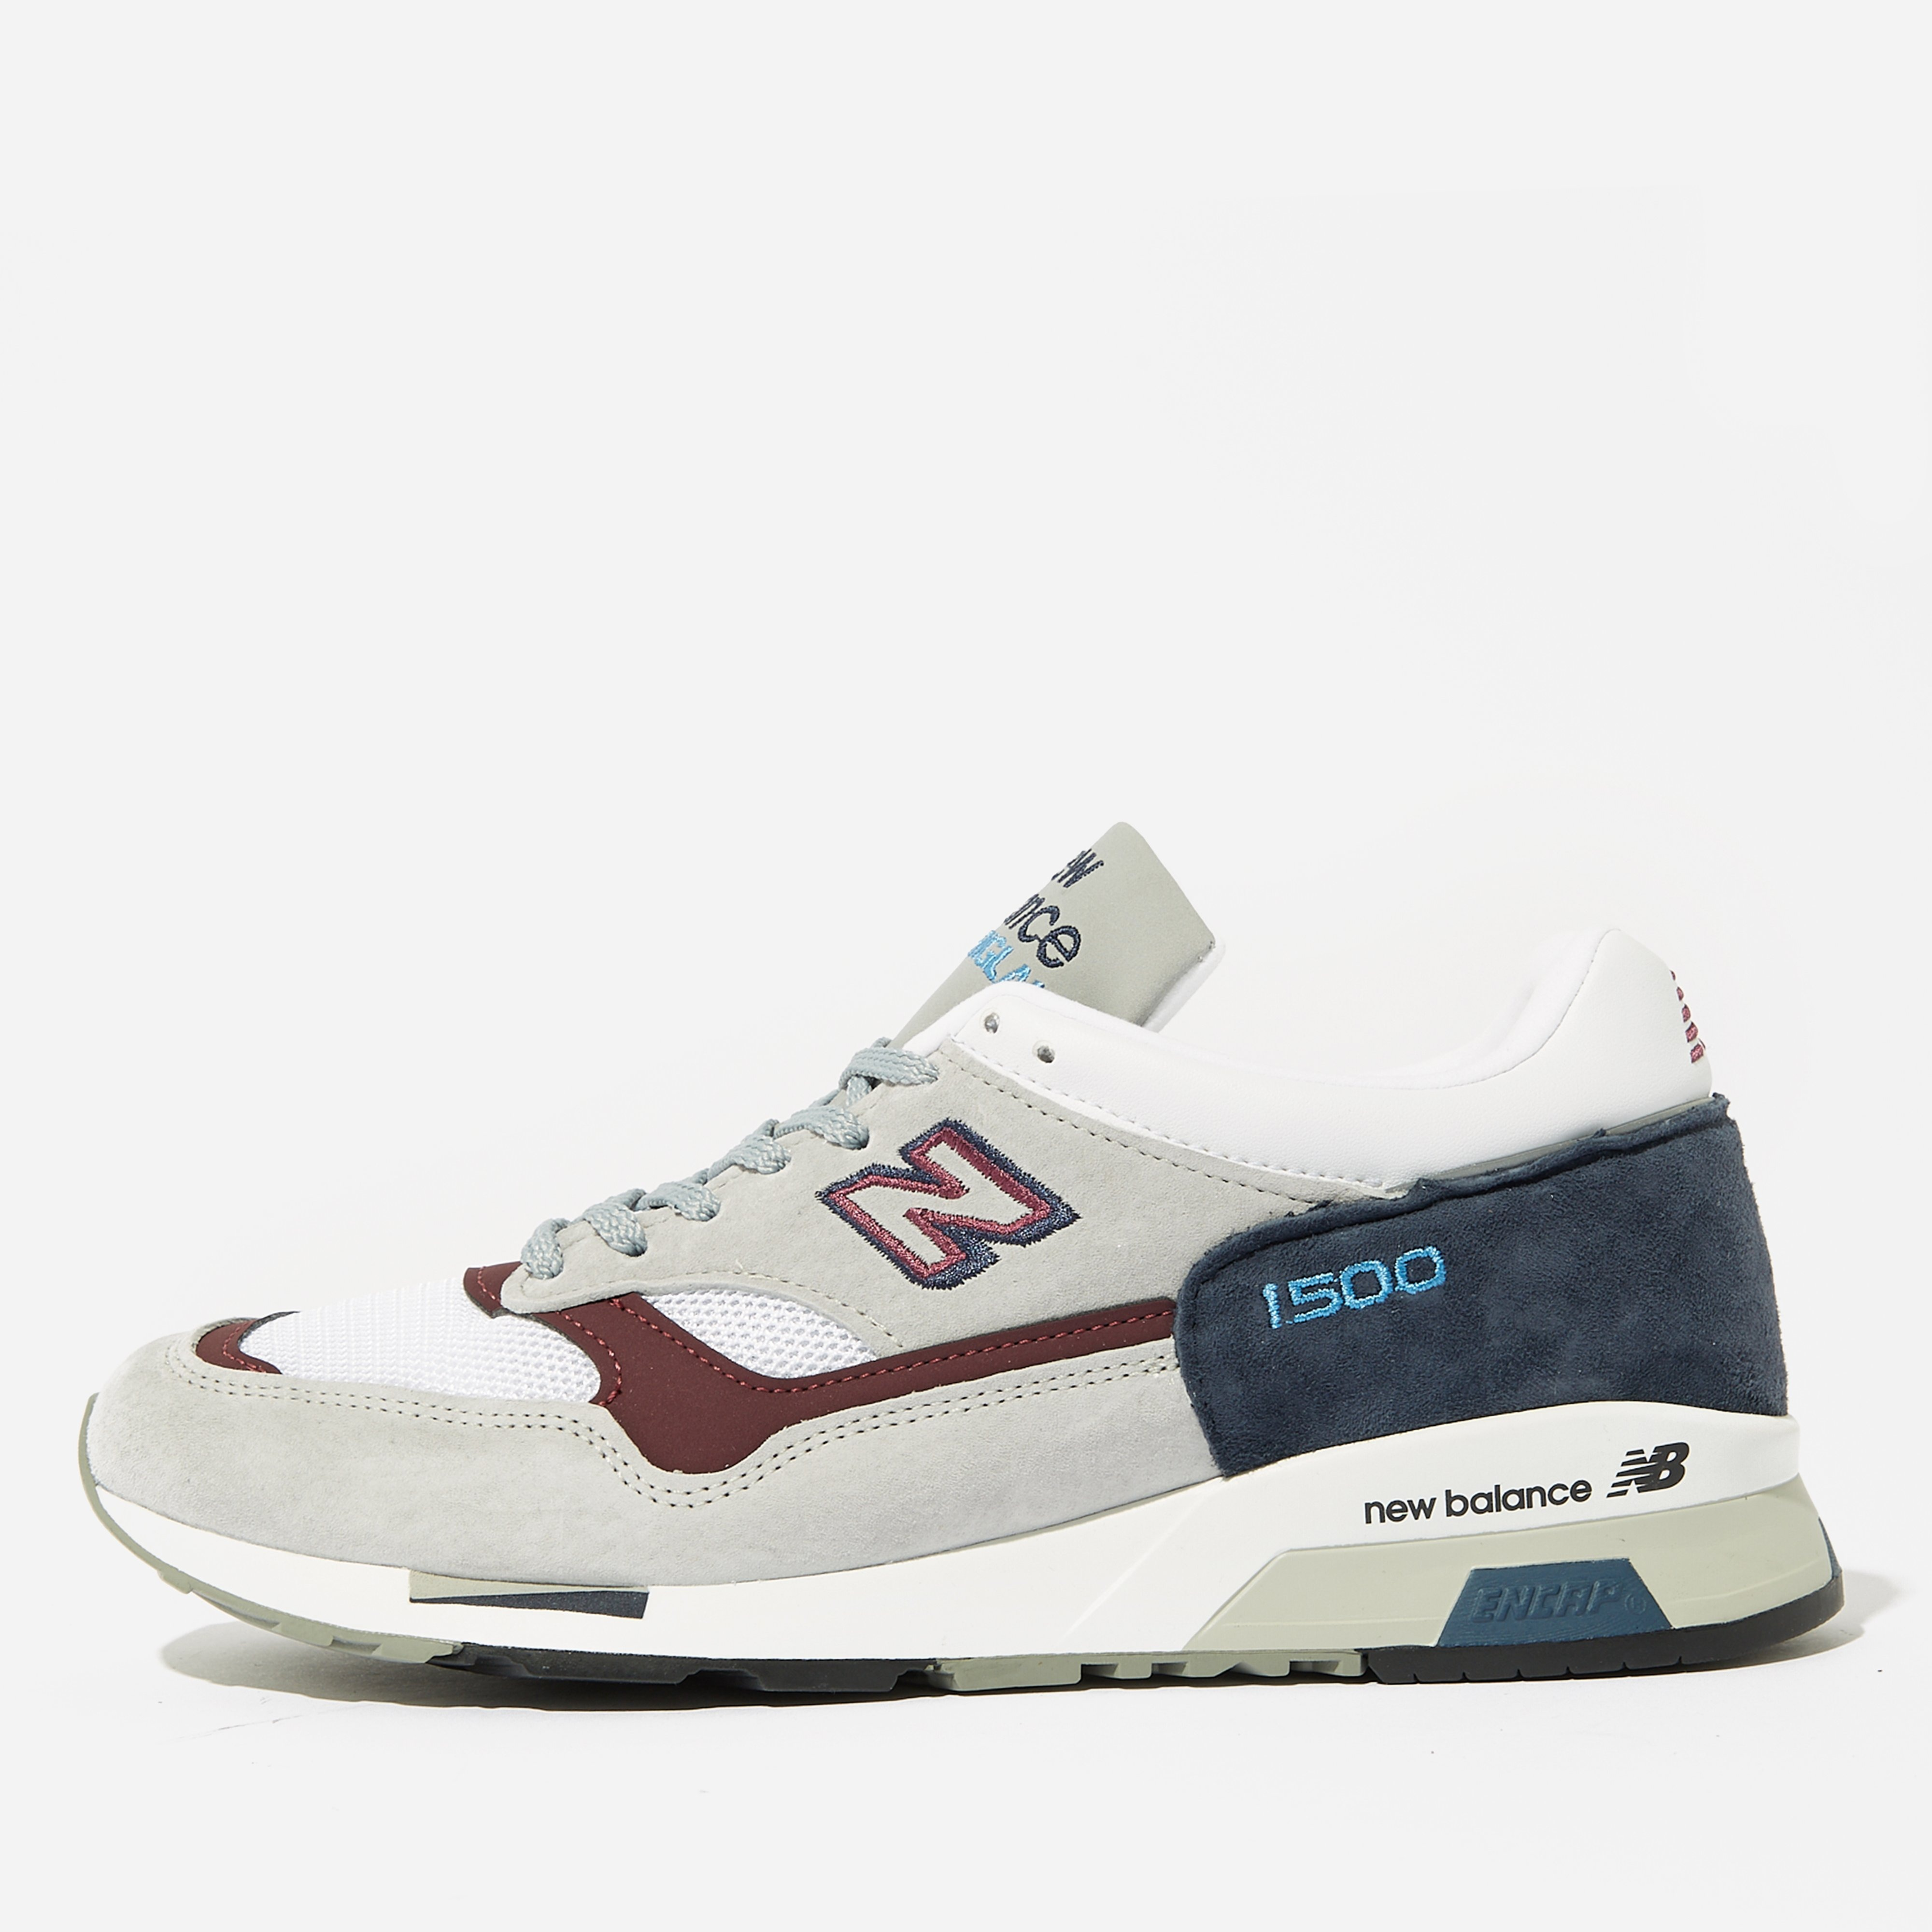 New Balance 1500 'Made in UK' | The Hip Store